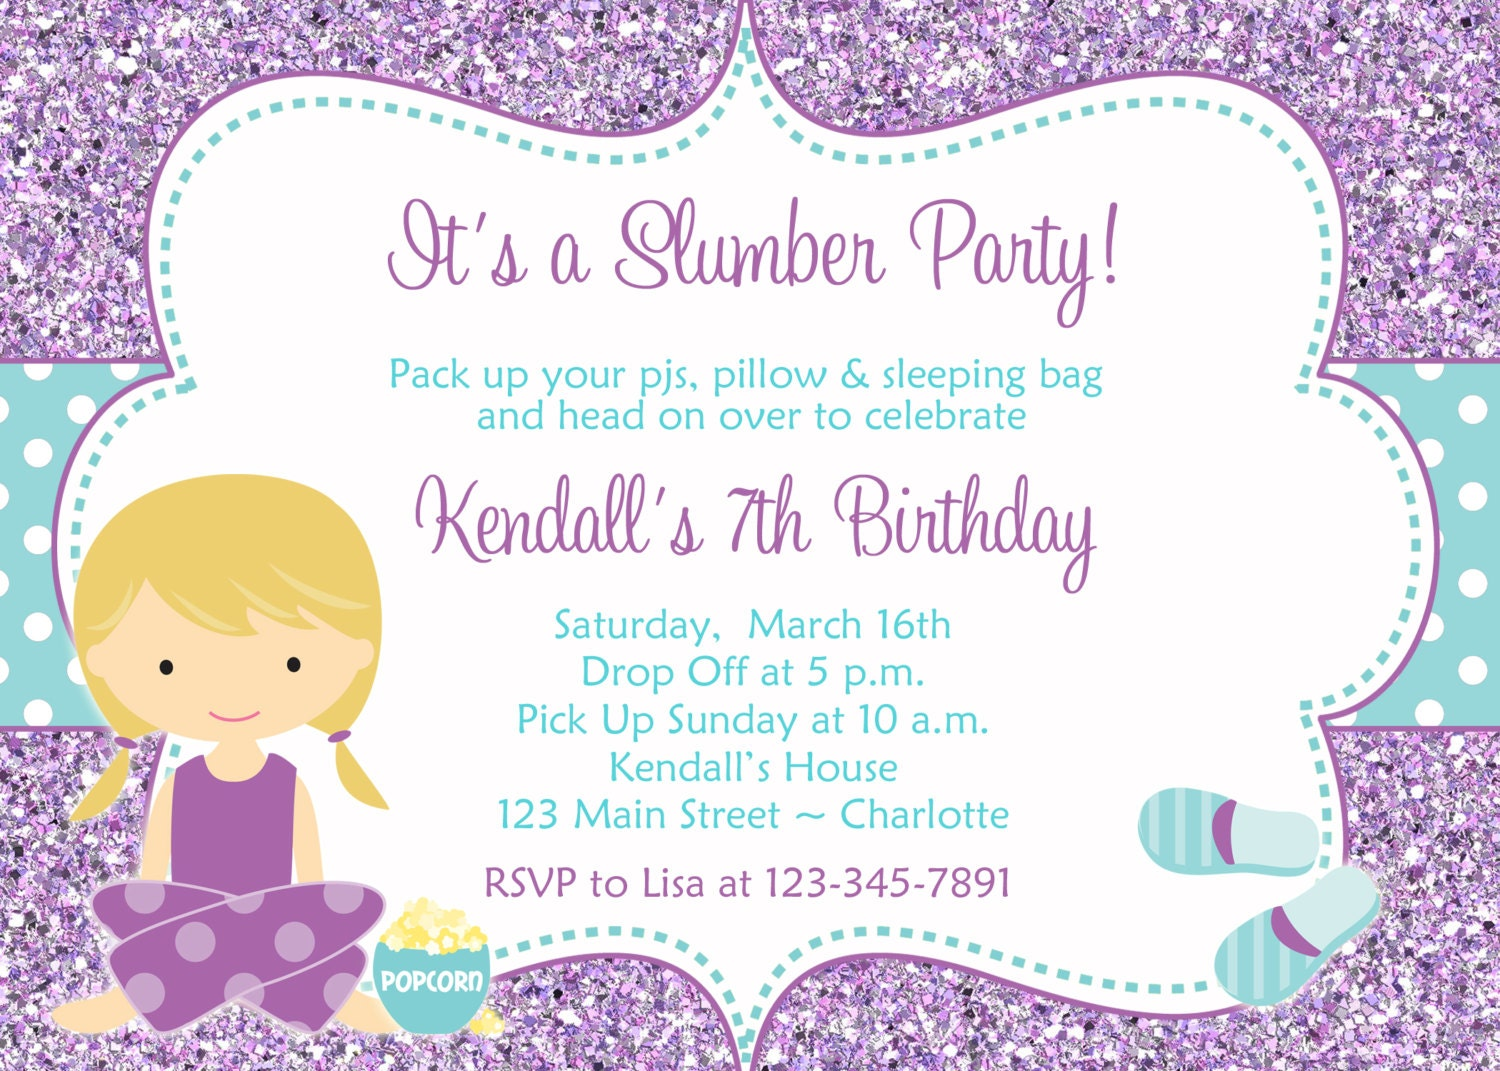 birthday slumber party invitations - Ideal.vistalist.co